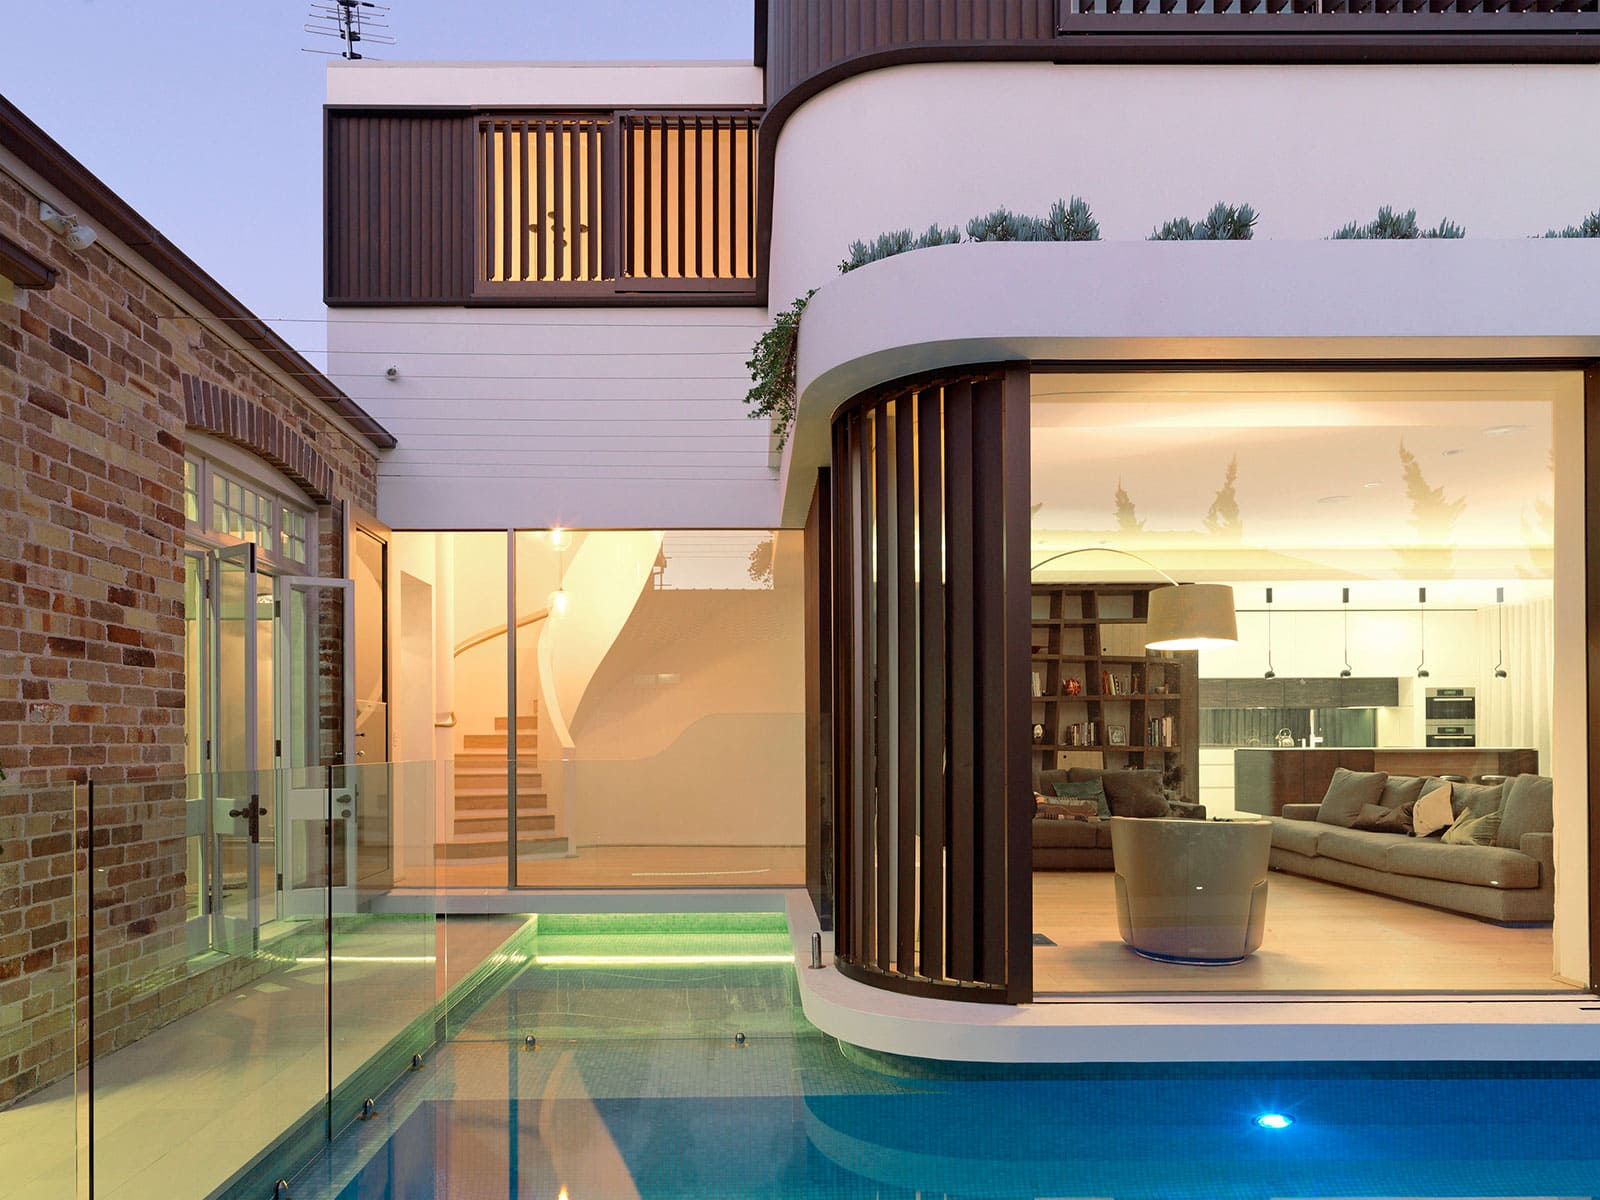 The Pool House - Luigi Rosselli Architects